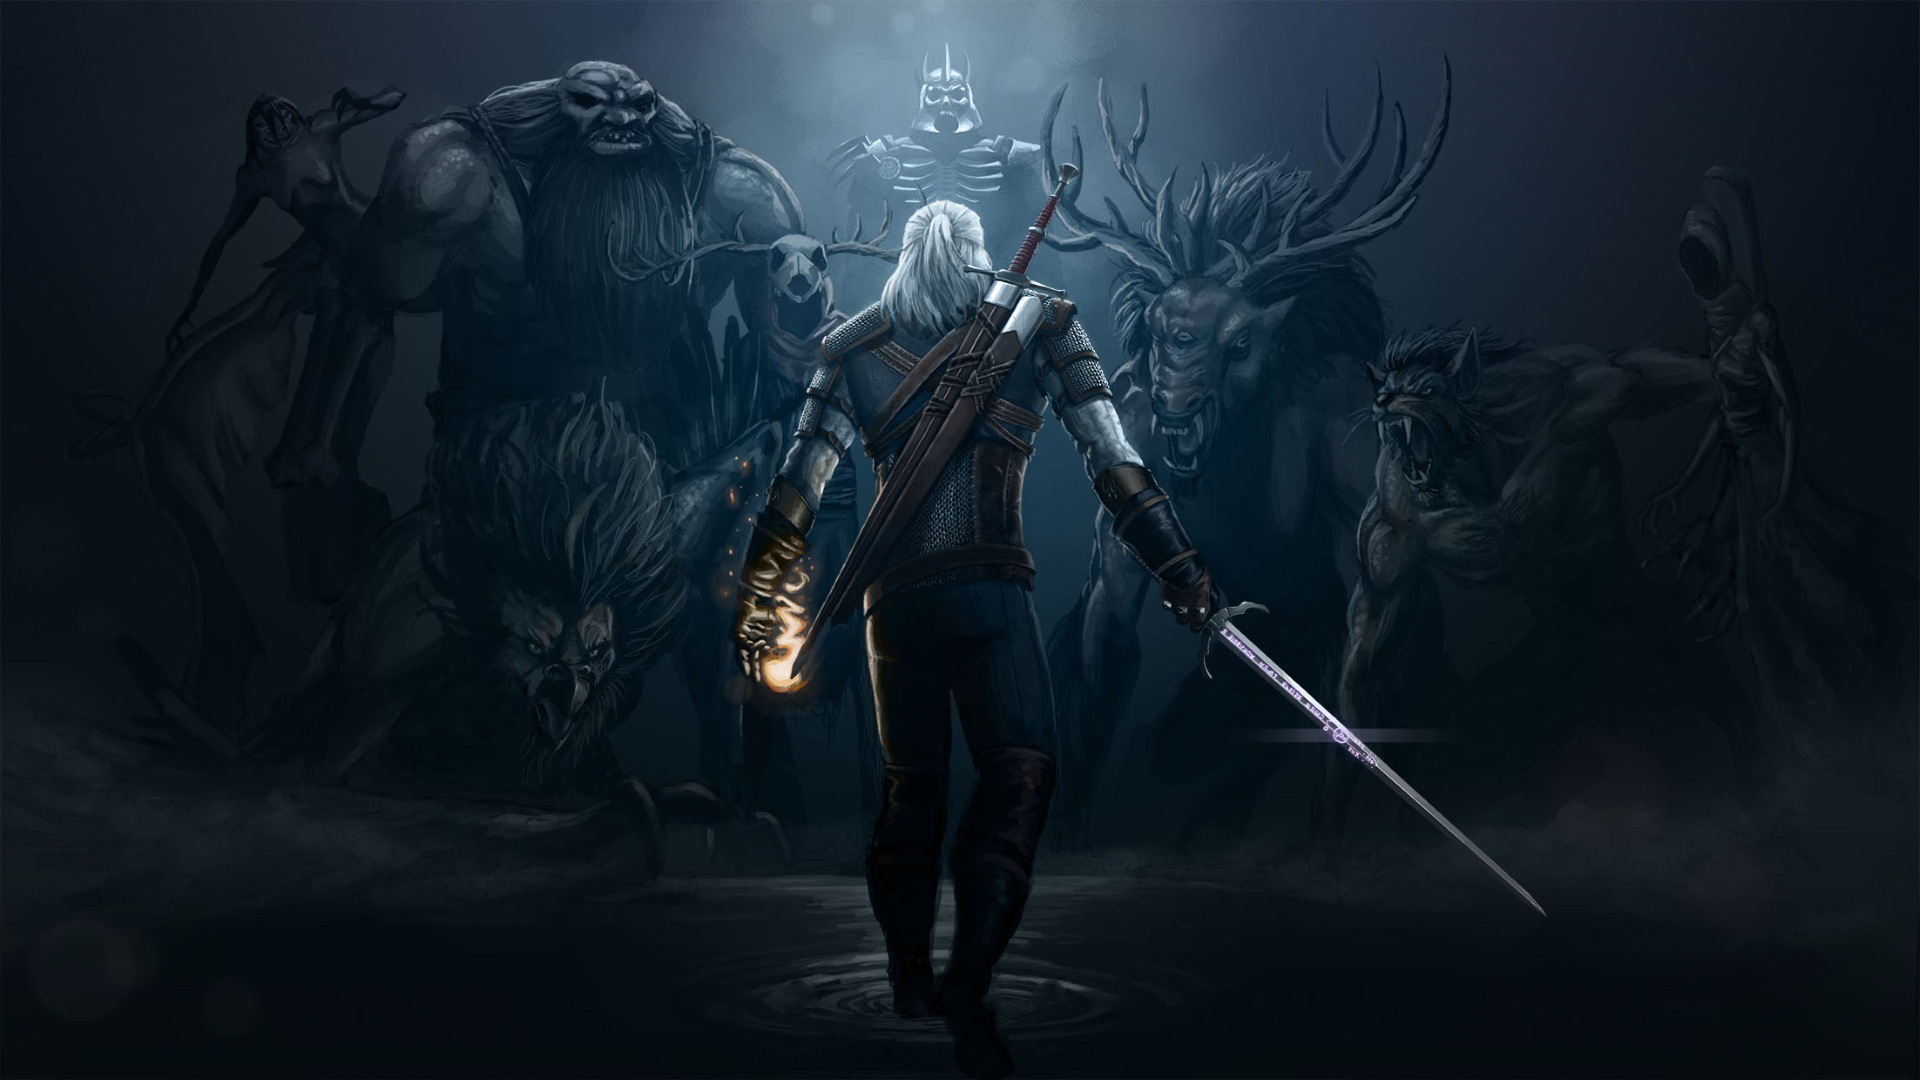 geralt-opposition-monster-the-witcher-wild-hunt-1920x1080-wallpaper-wpc5809976